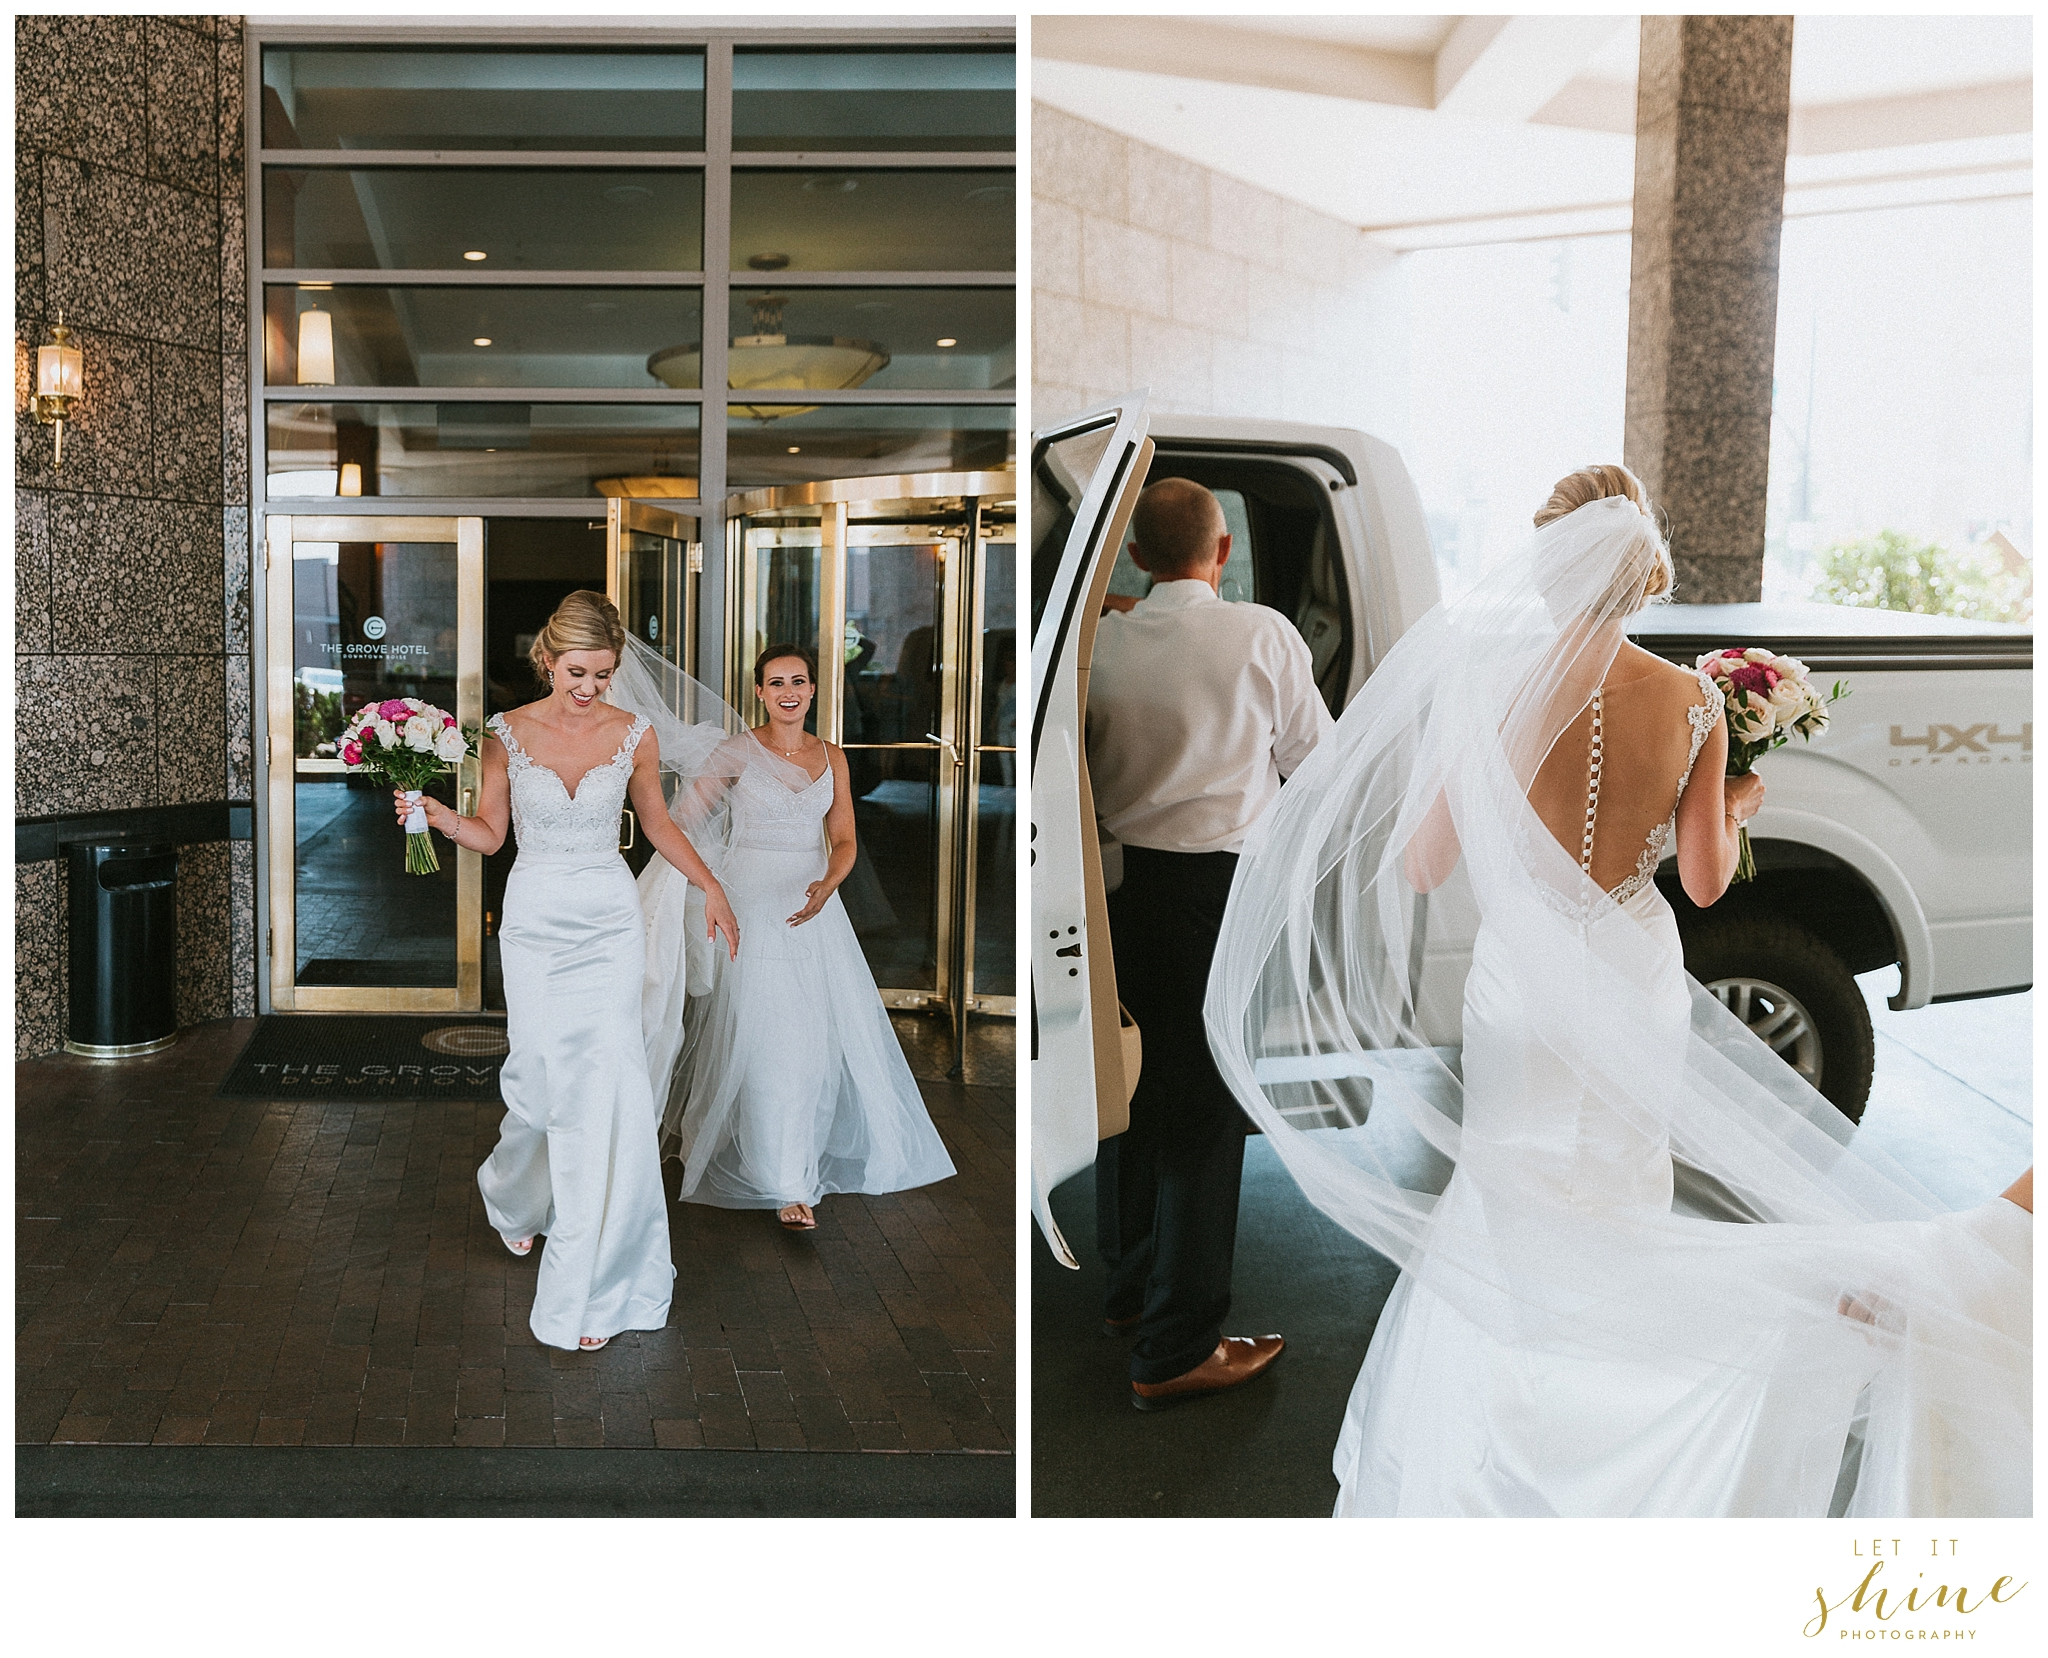 The Grove Hotel Boise Wedding 2017 Let it Shine Photography-8476.jpg